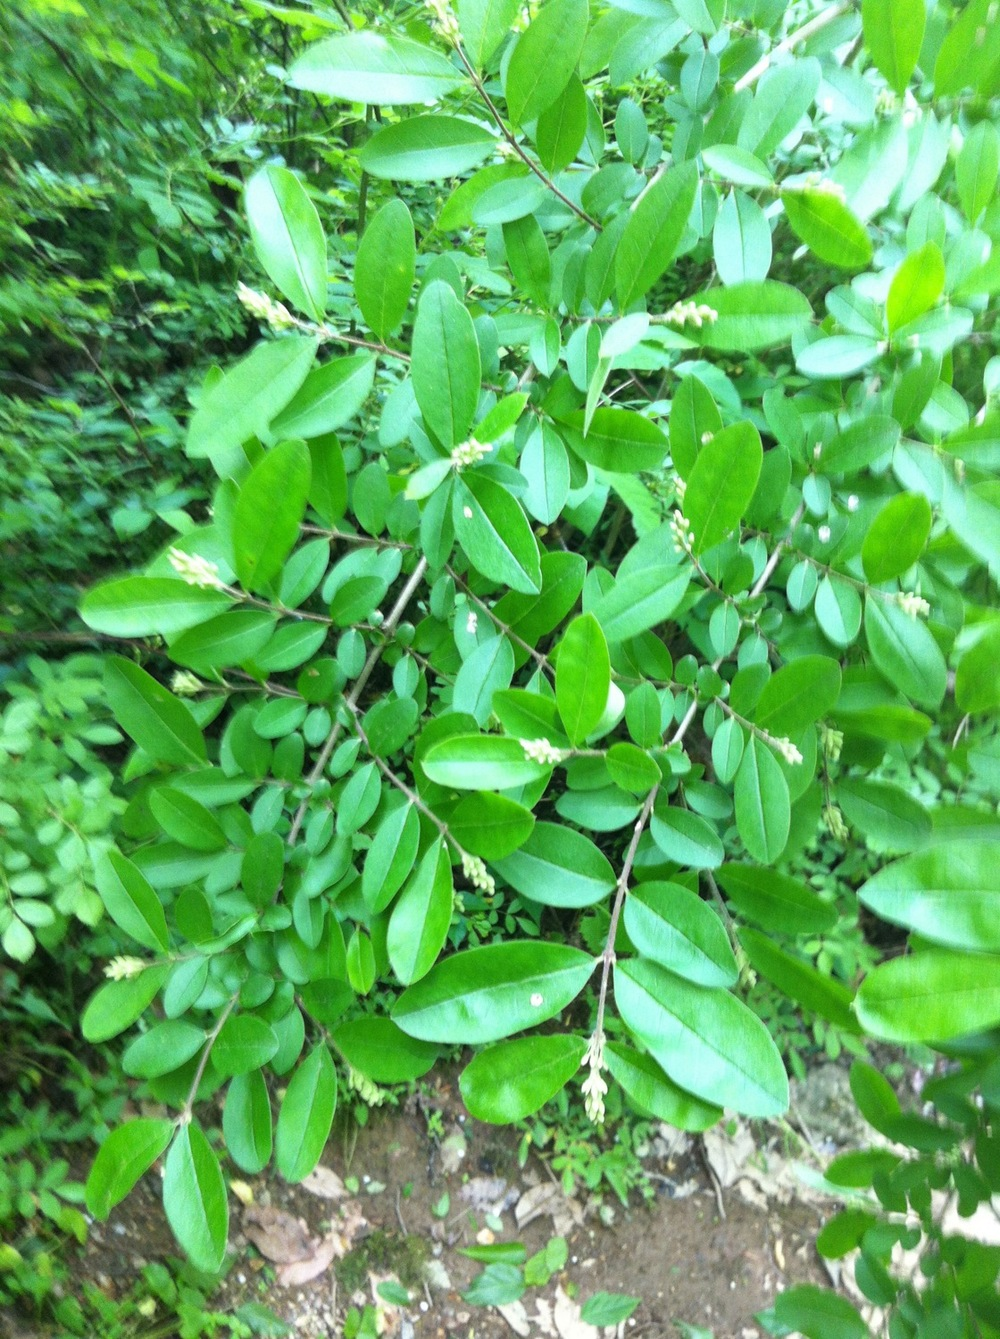 Obtuse-leaved privet